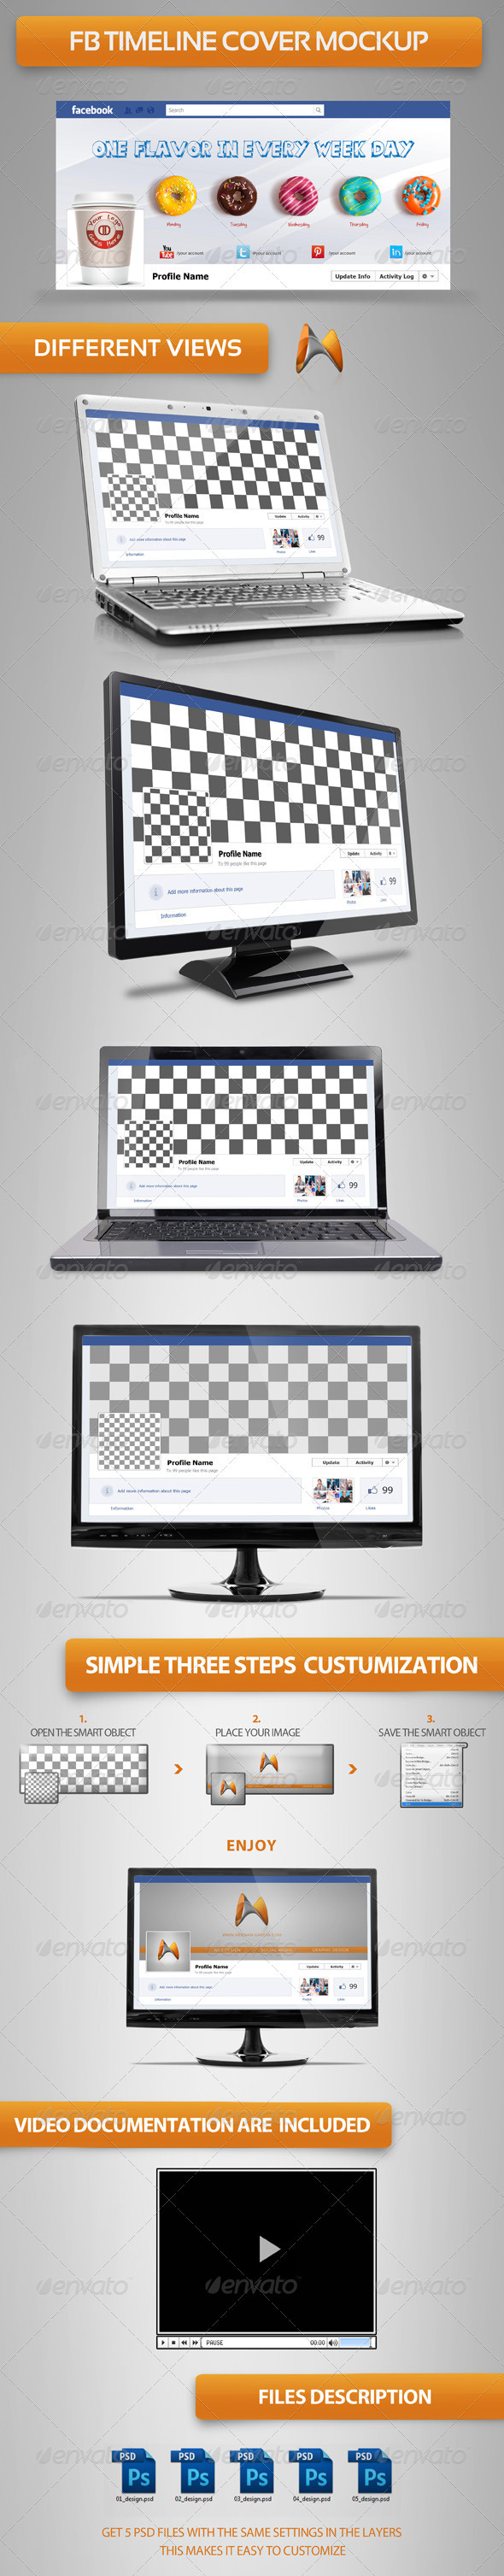 FB Timeline Cover Mock-up - Miscellaneous Graphics